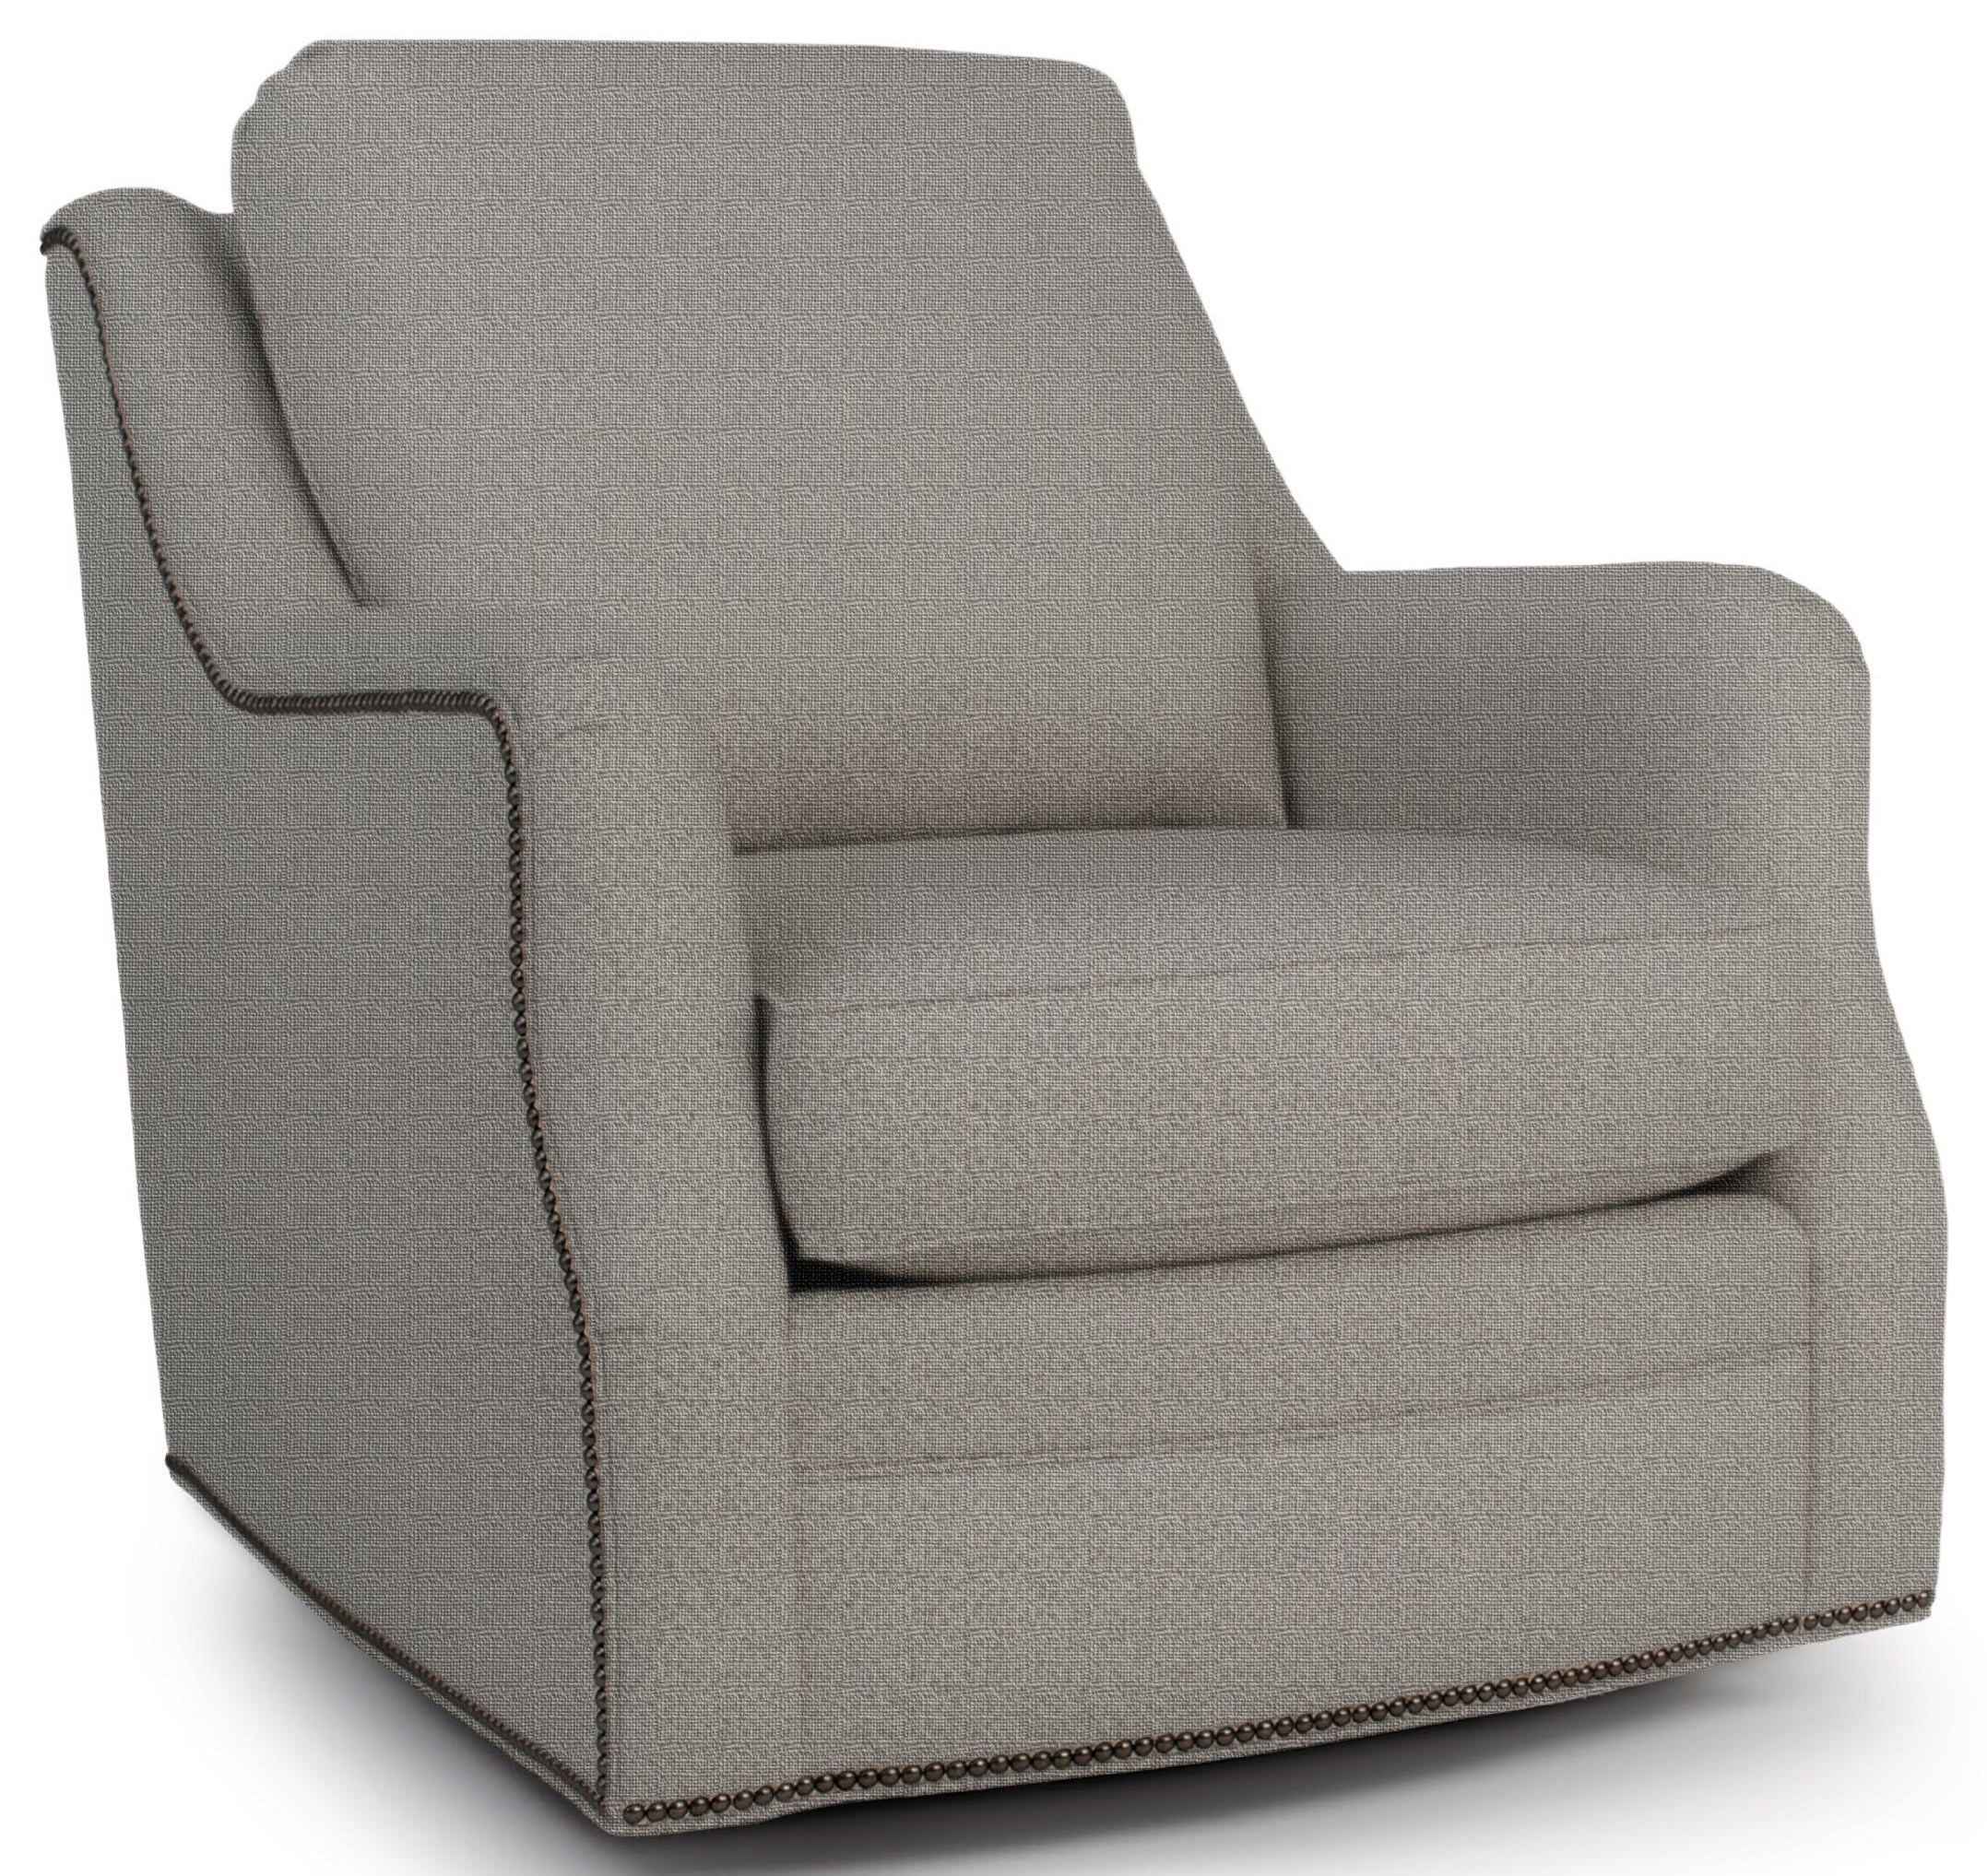 563 Swivel Glider Chair by Smith Brothers at Johnny Janosik